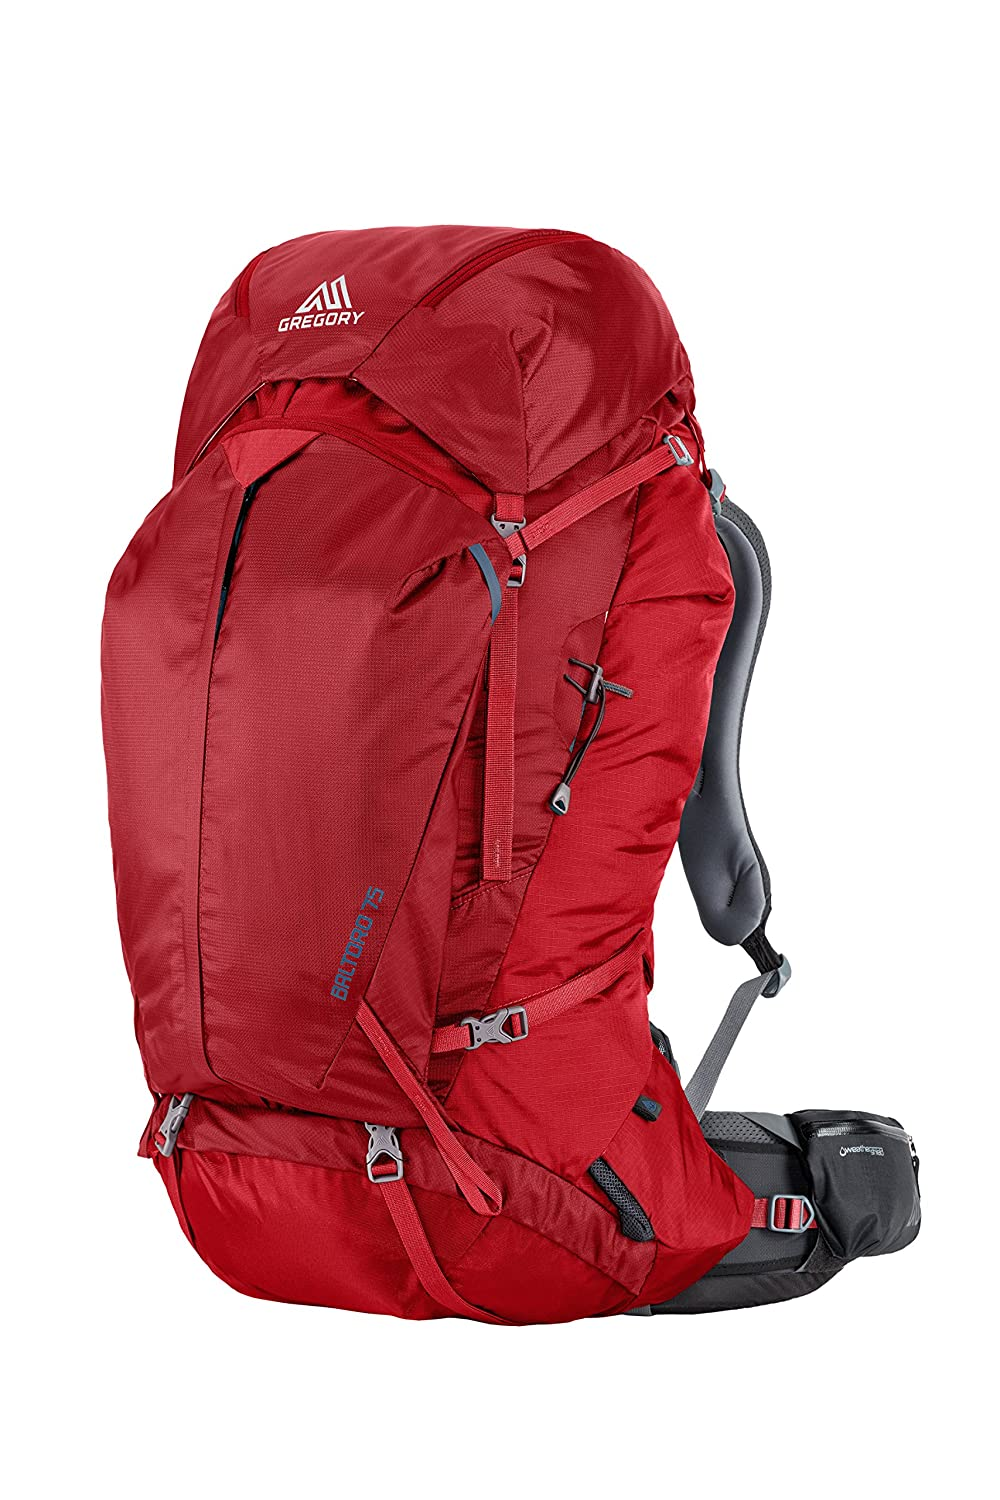 Gregory Mountain Baltoro 75 Backpack